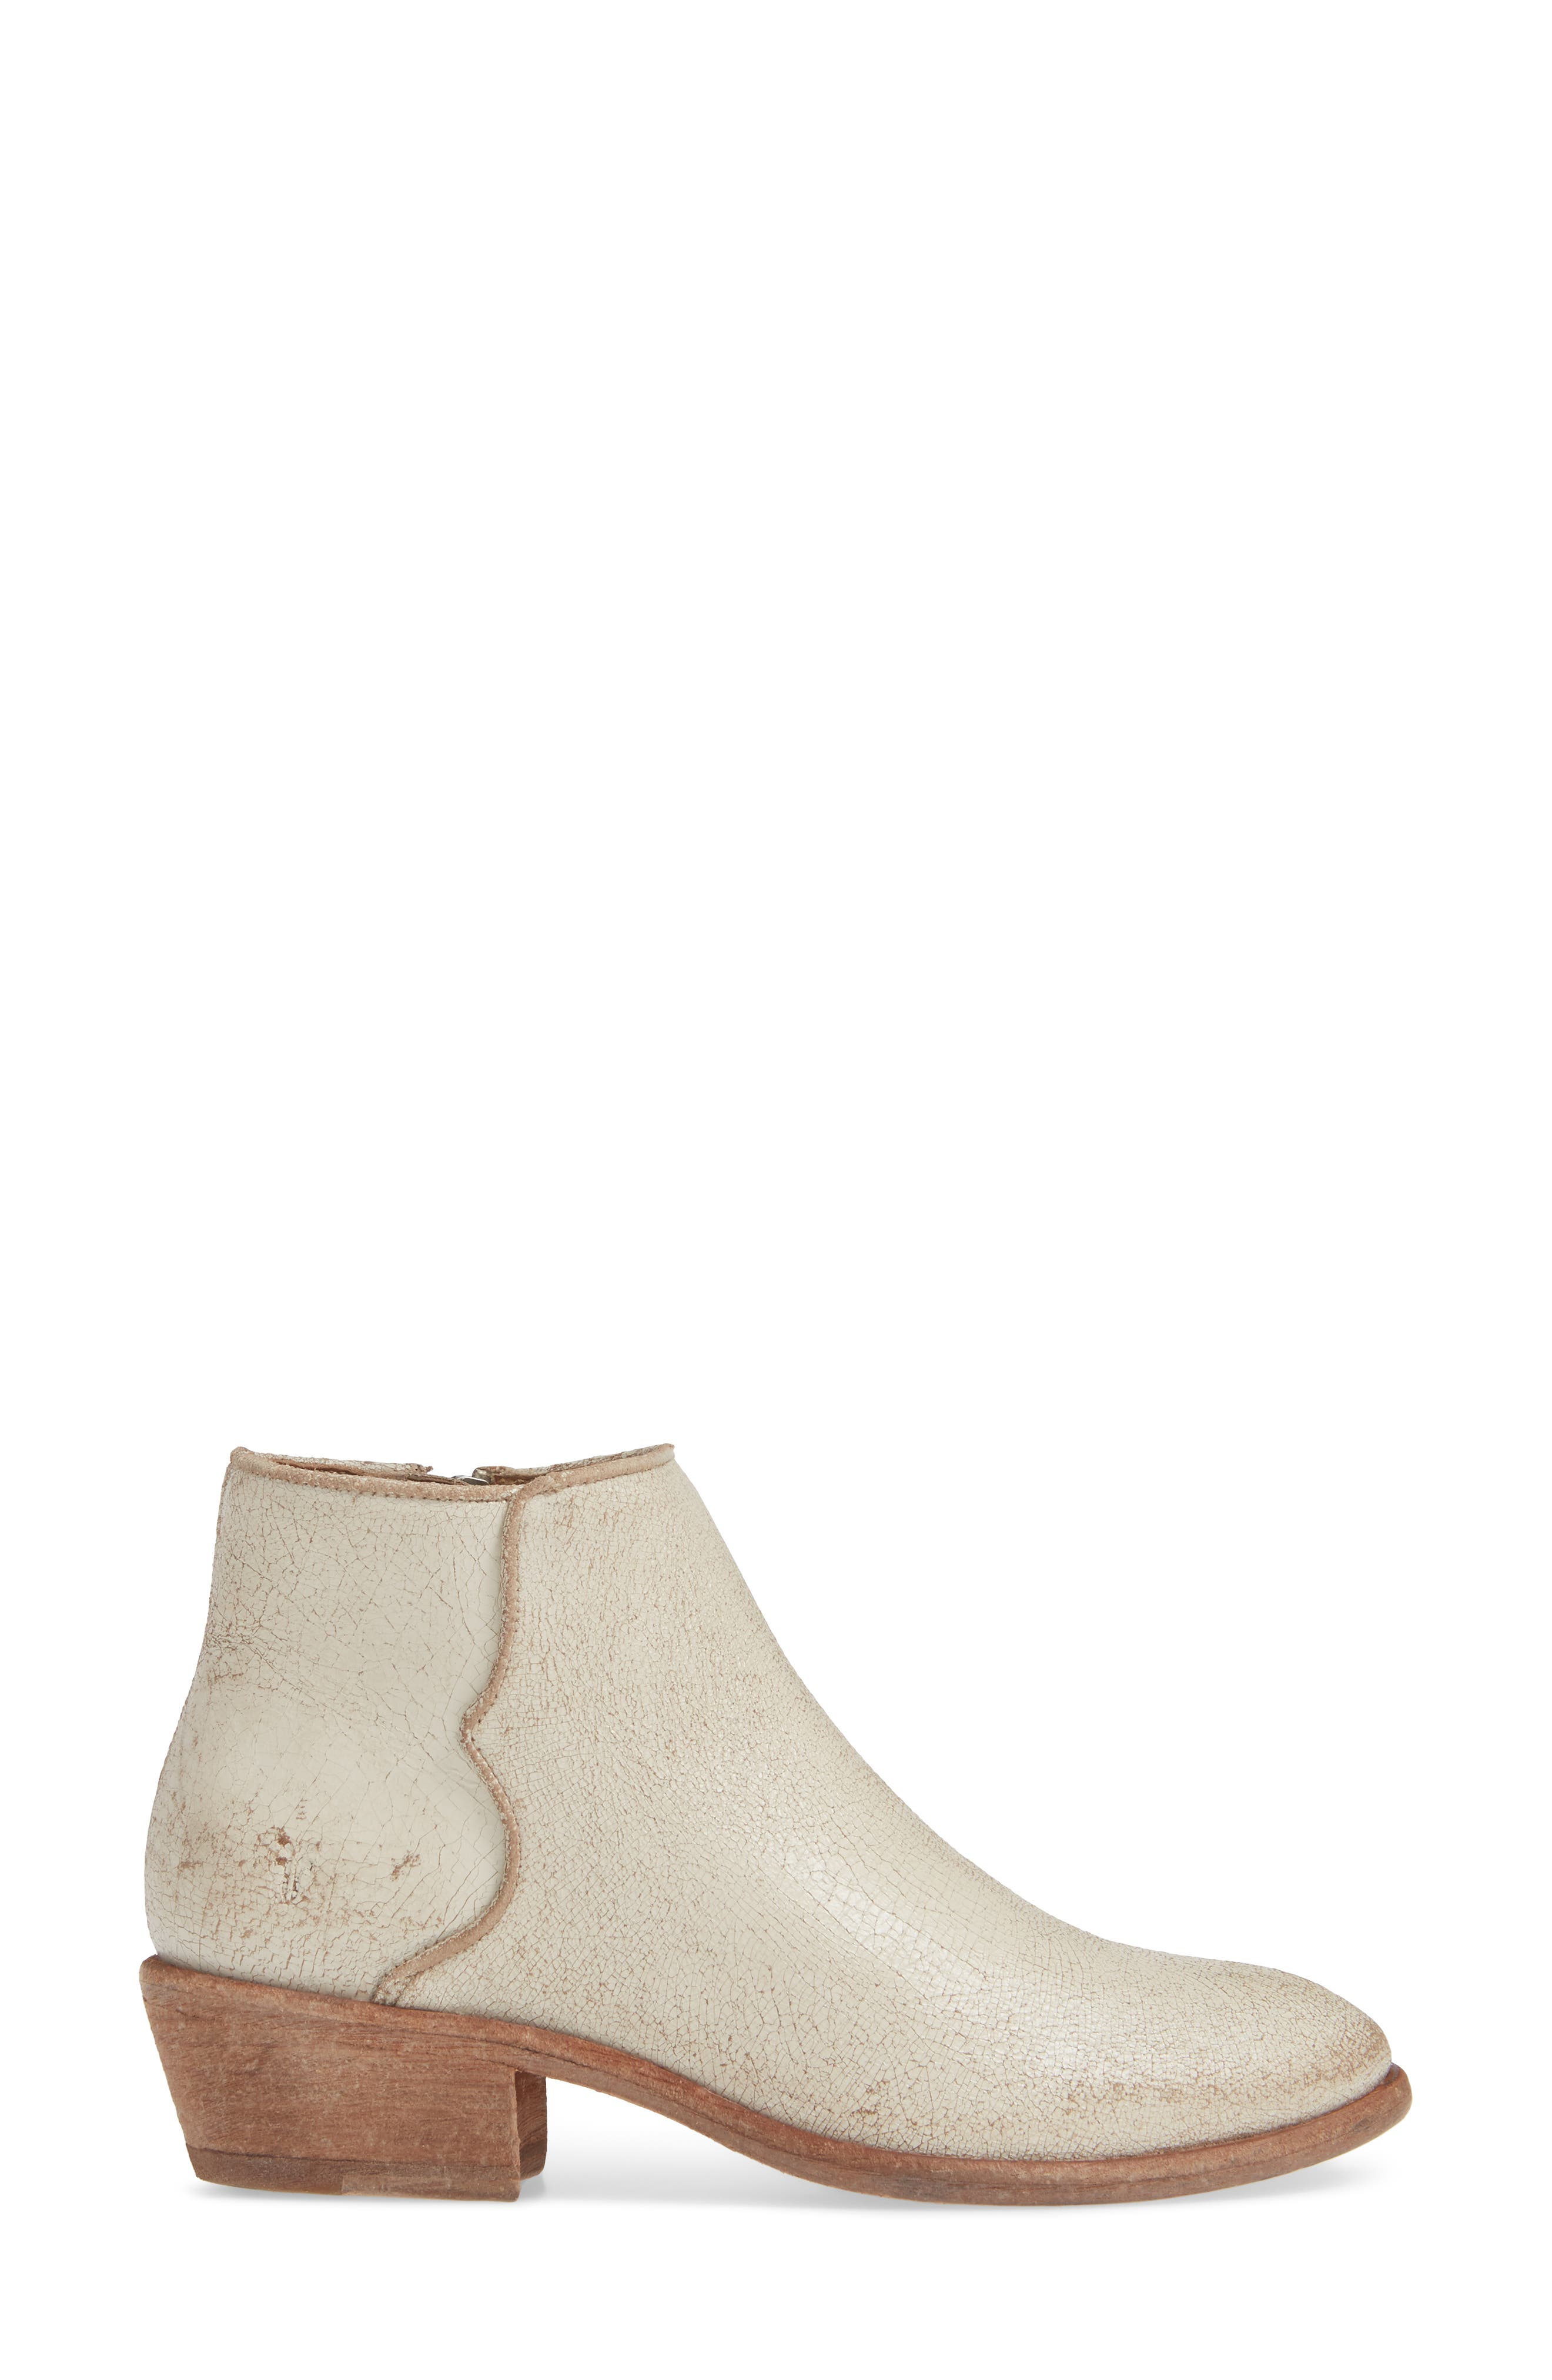 Carson Piping Bootie,                             Alternate thumbnail 3, color,                             900